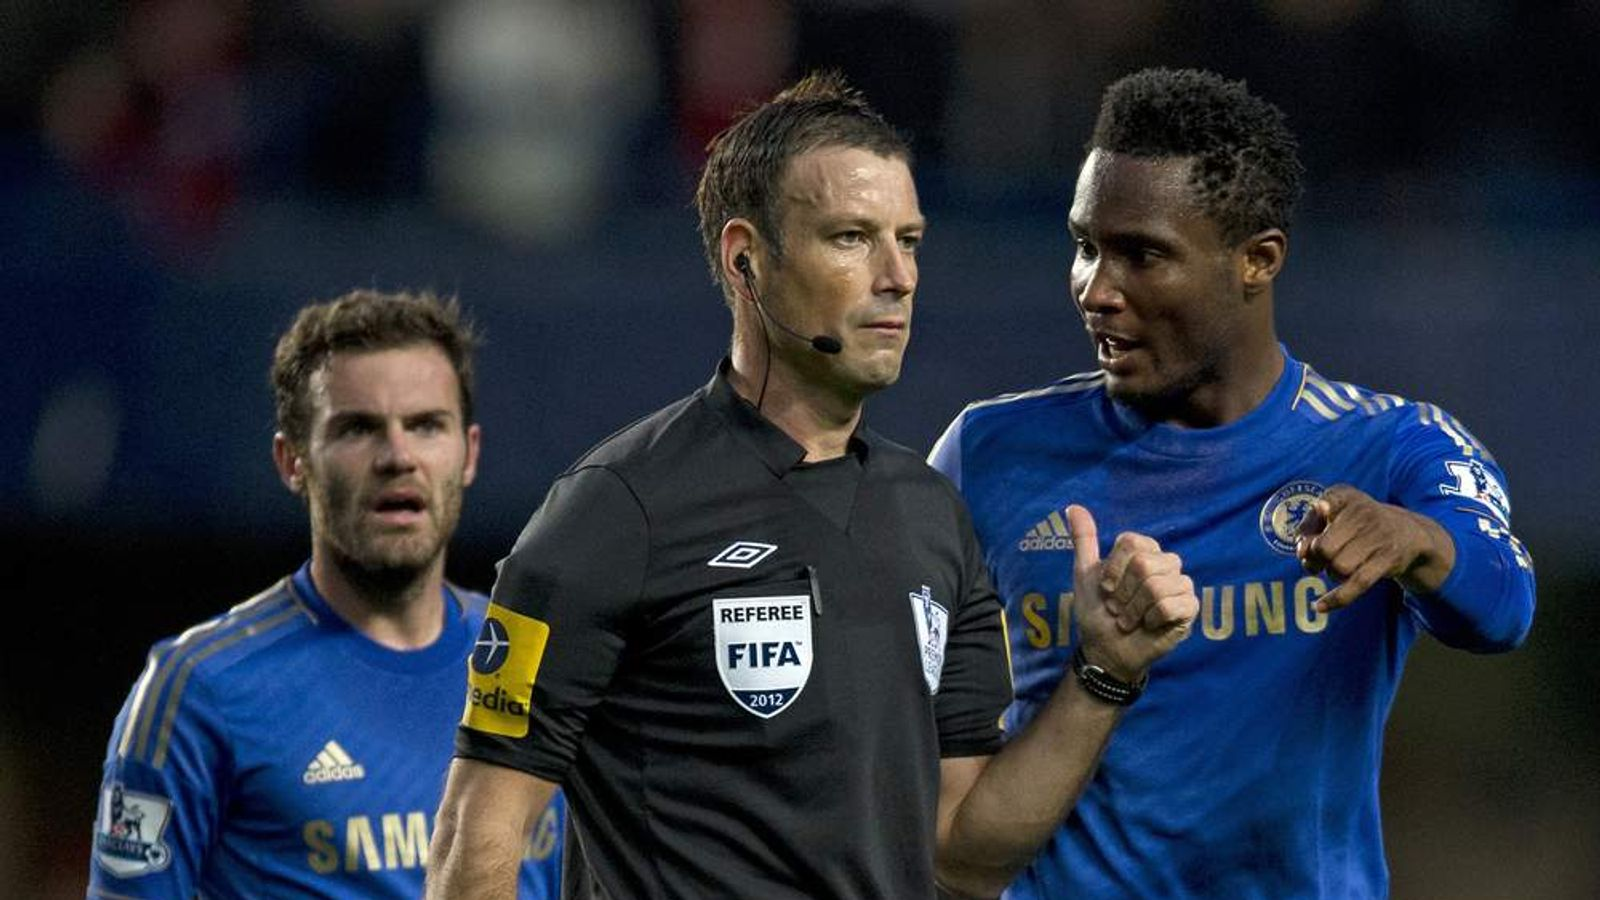 John Mikel Obi talking with referee Mark Clattenburg